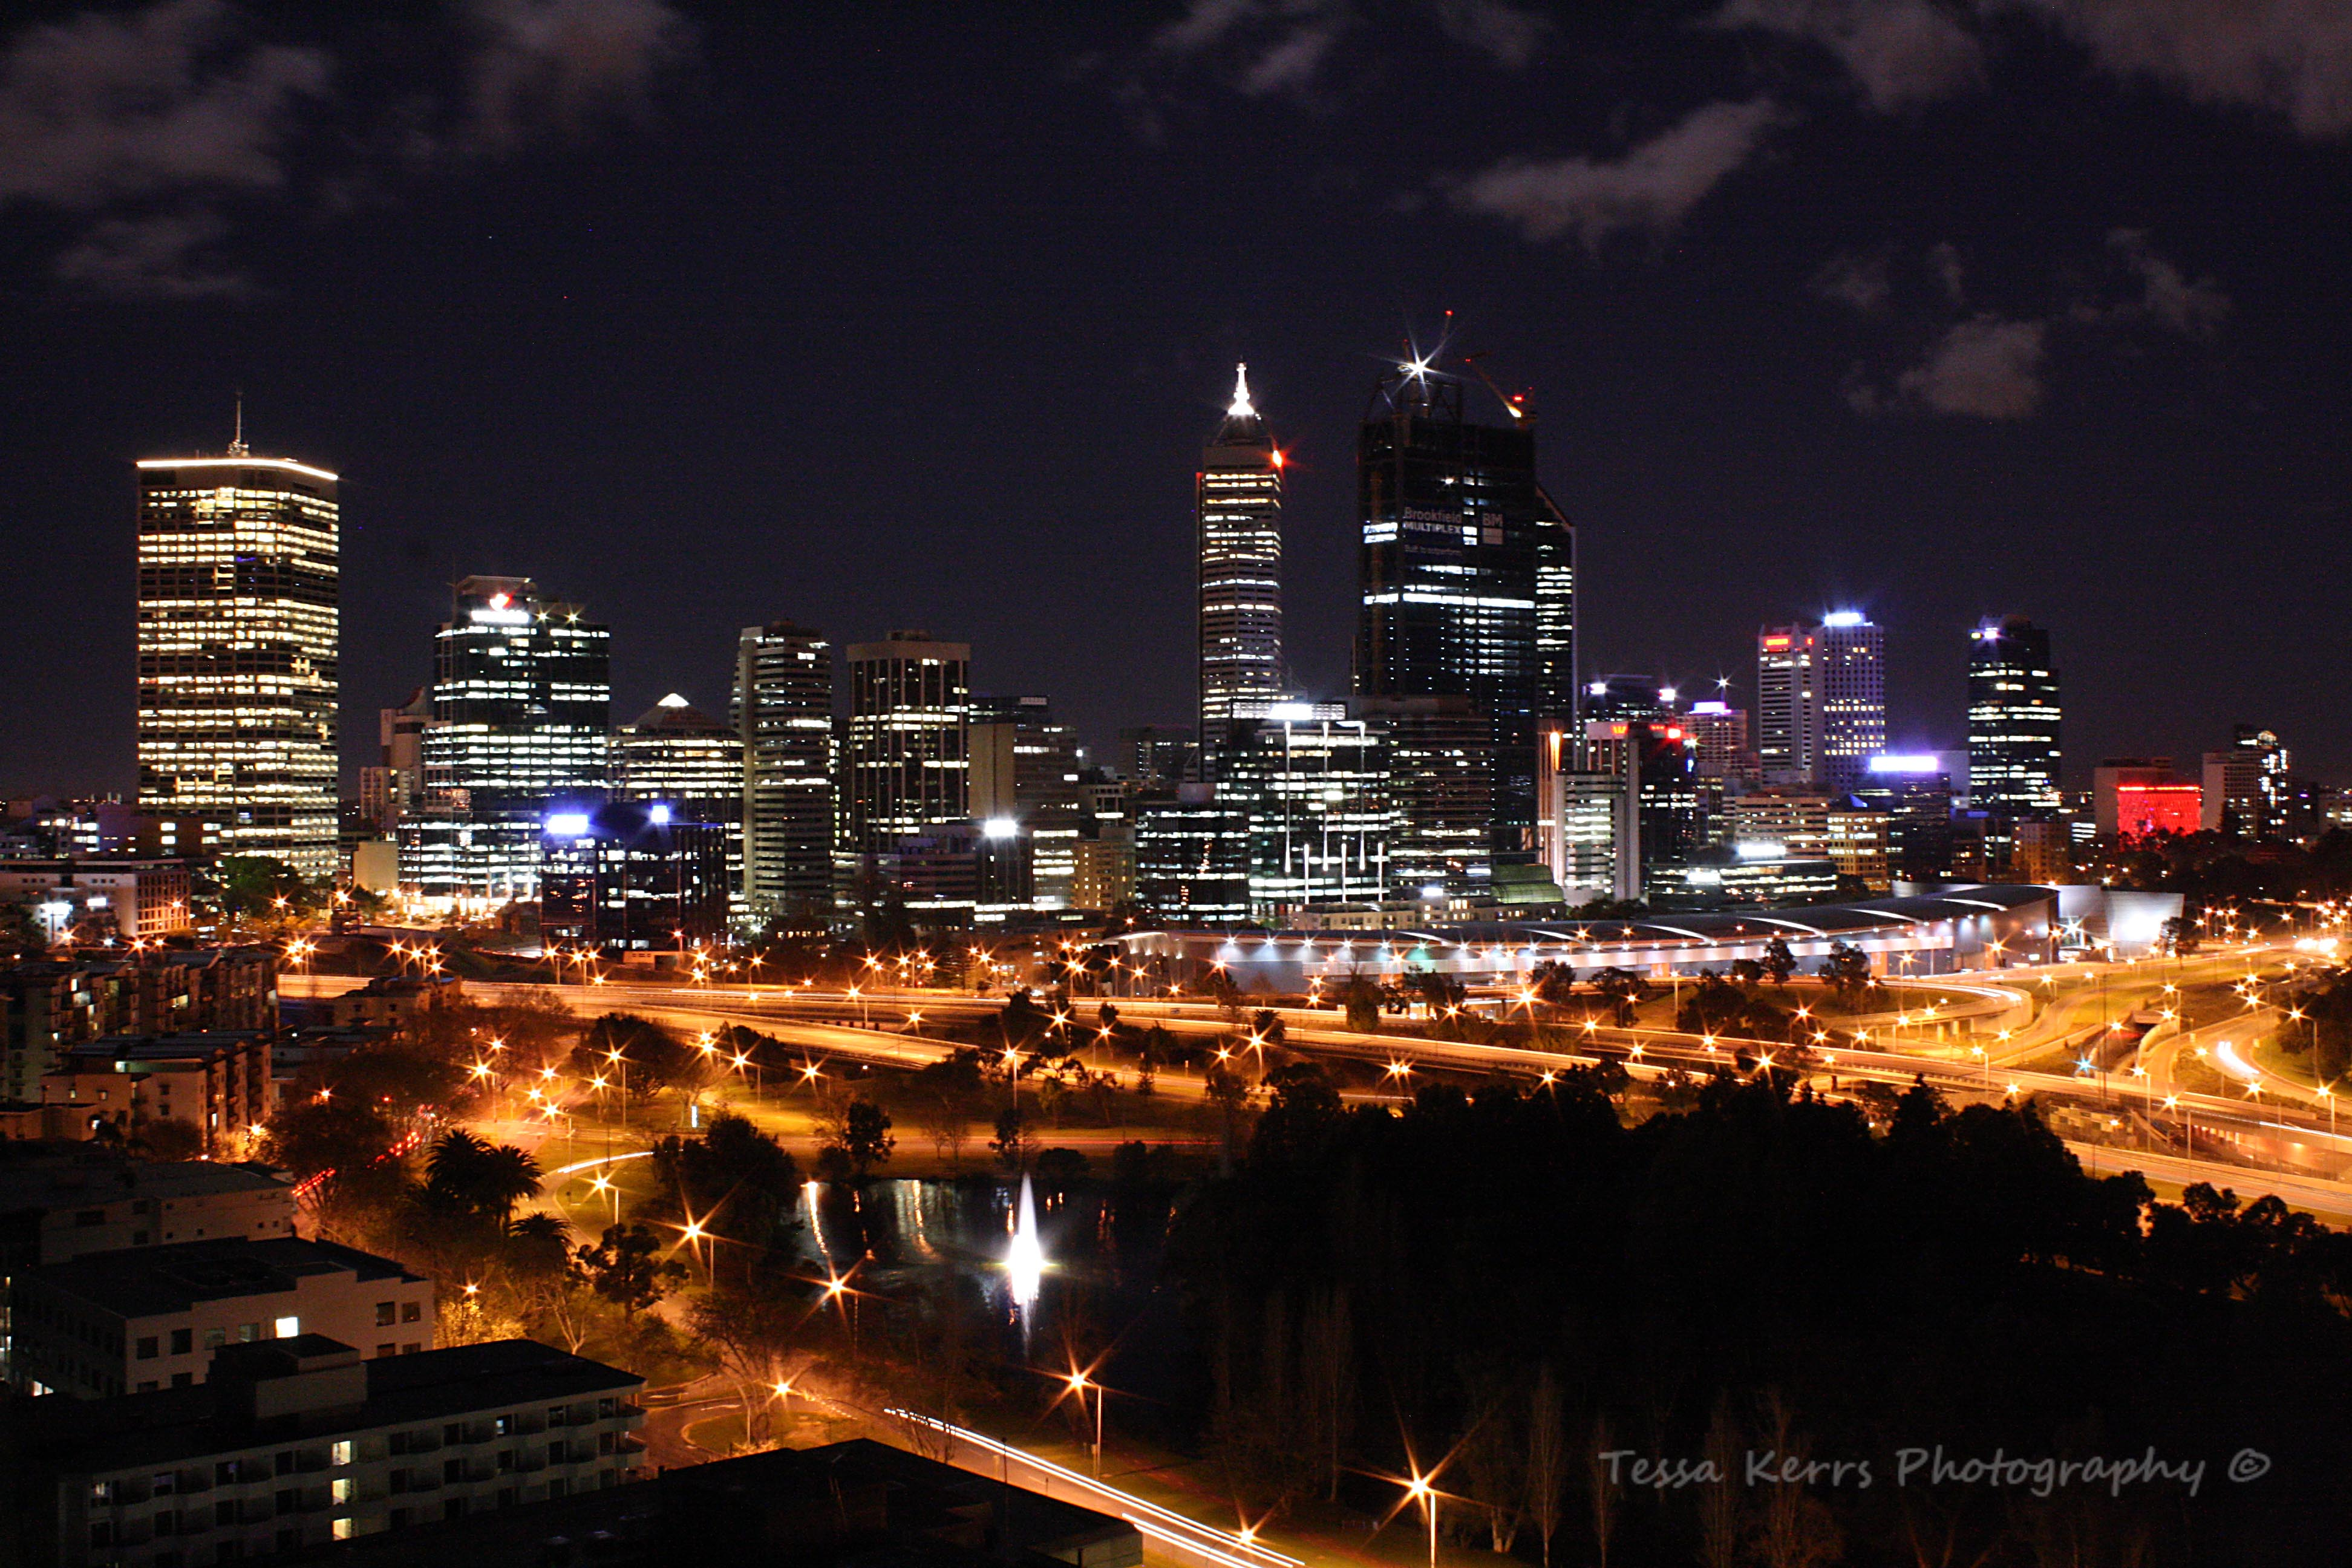 City Night Landscape Photography - klejonka